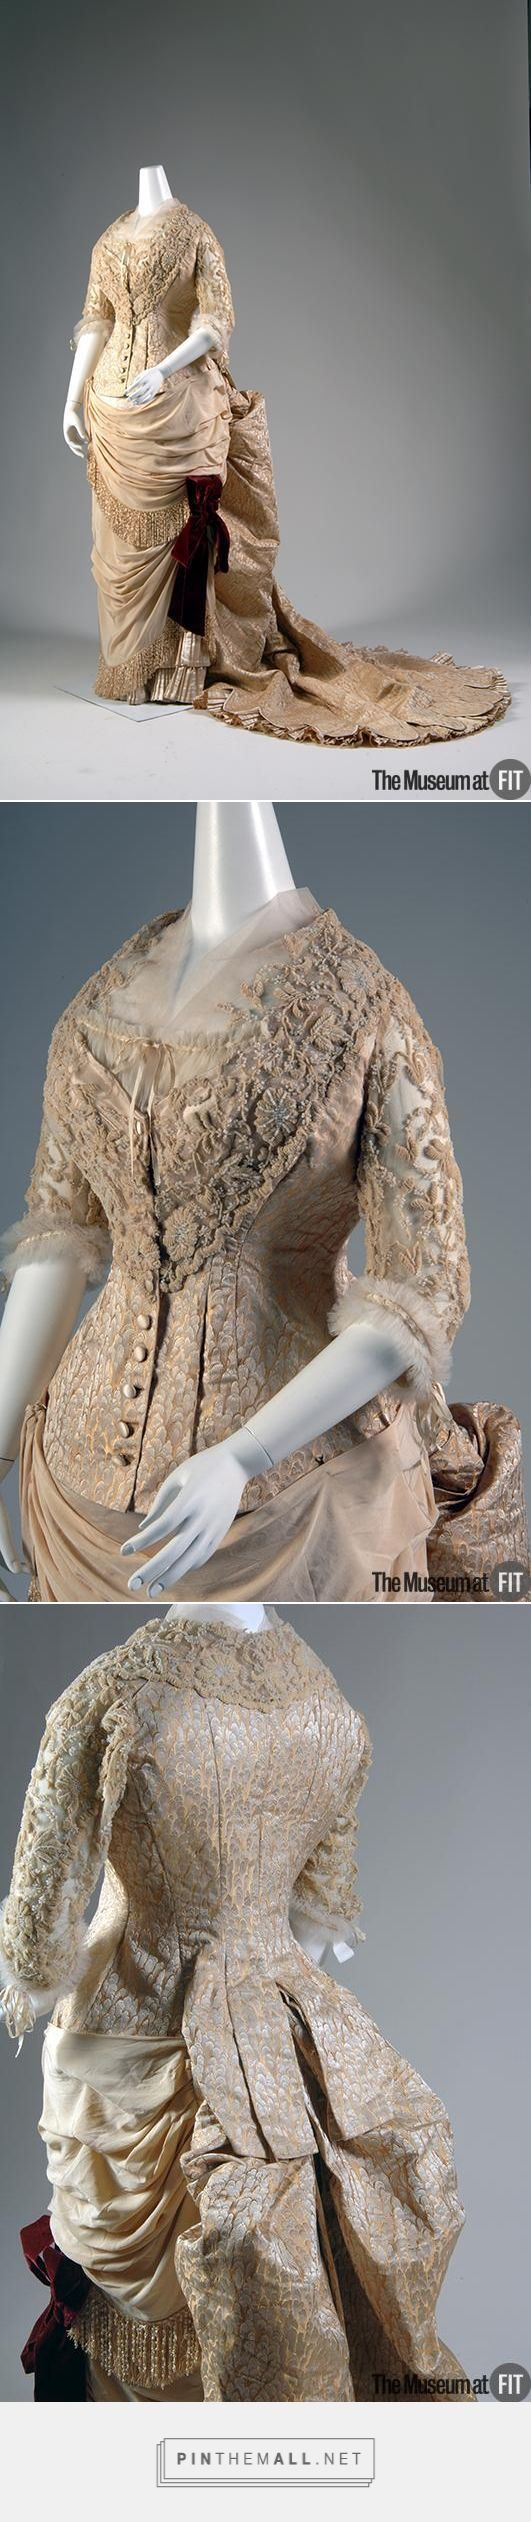 Evening dress (c. 1883, France) - FIT Museum